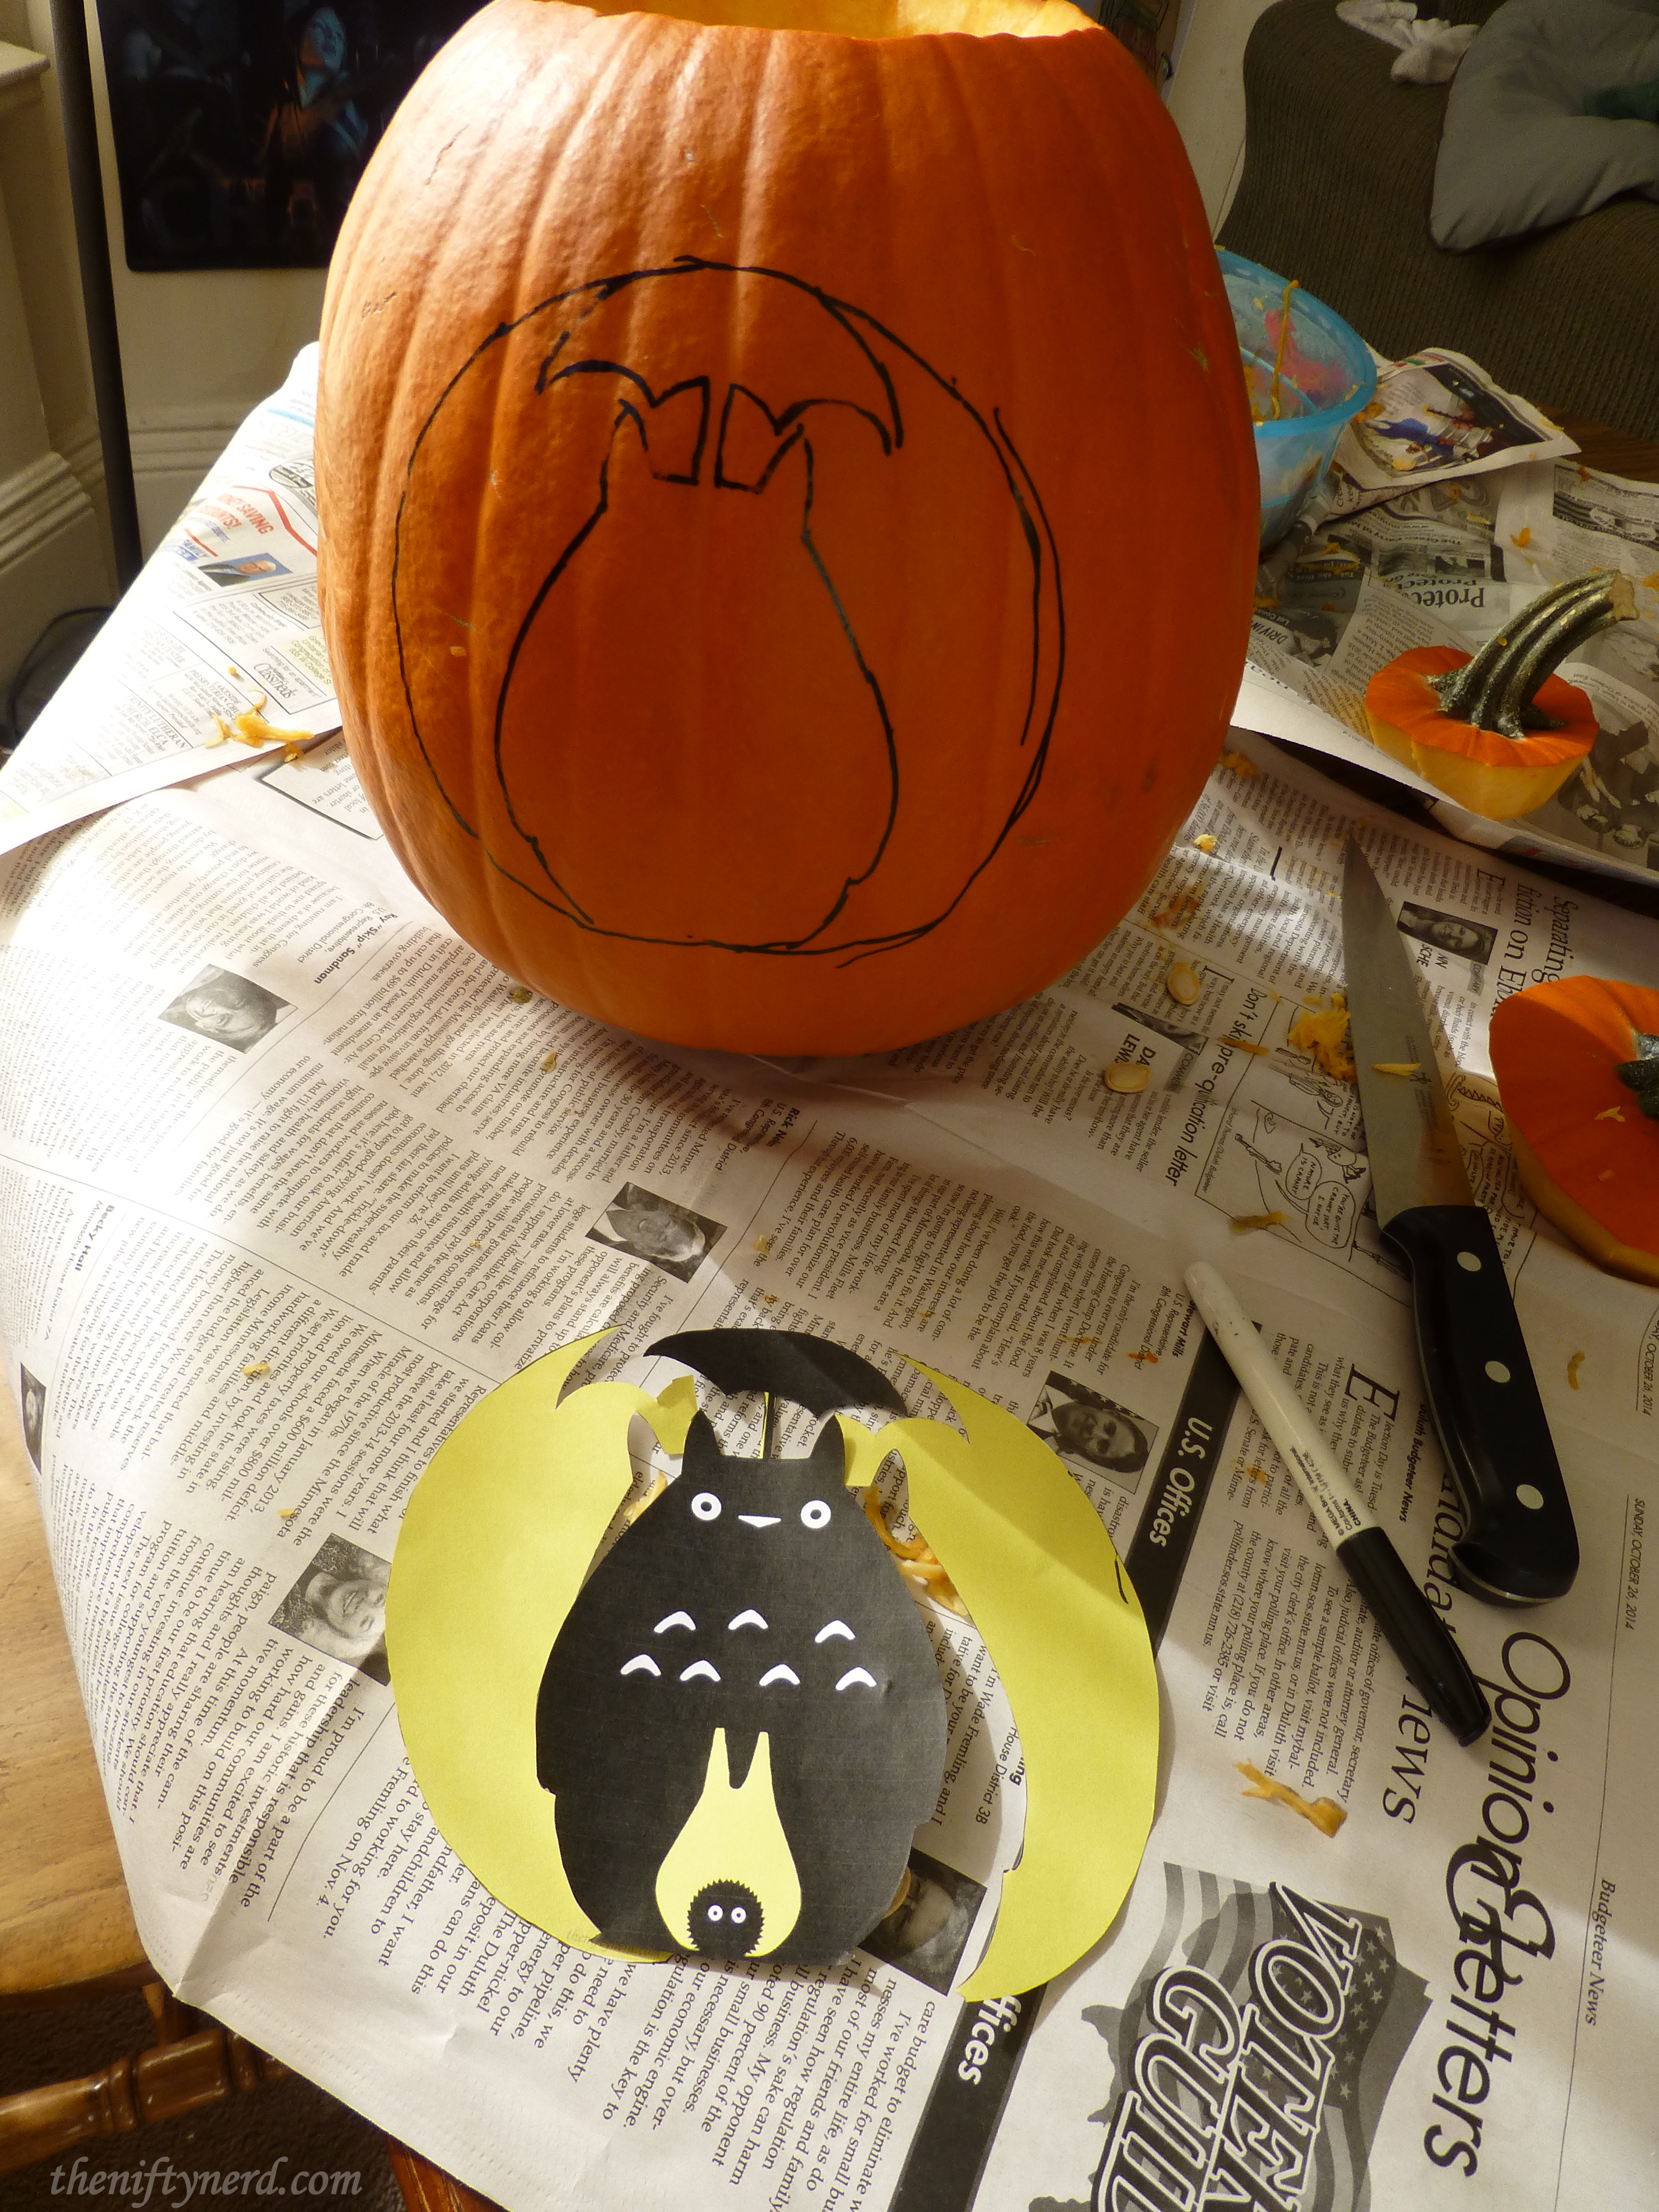 tracing totoro pattern into a pumpkin for cutting